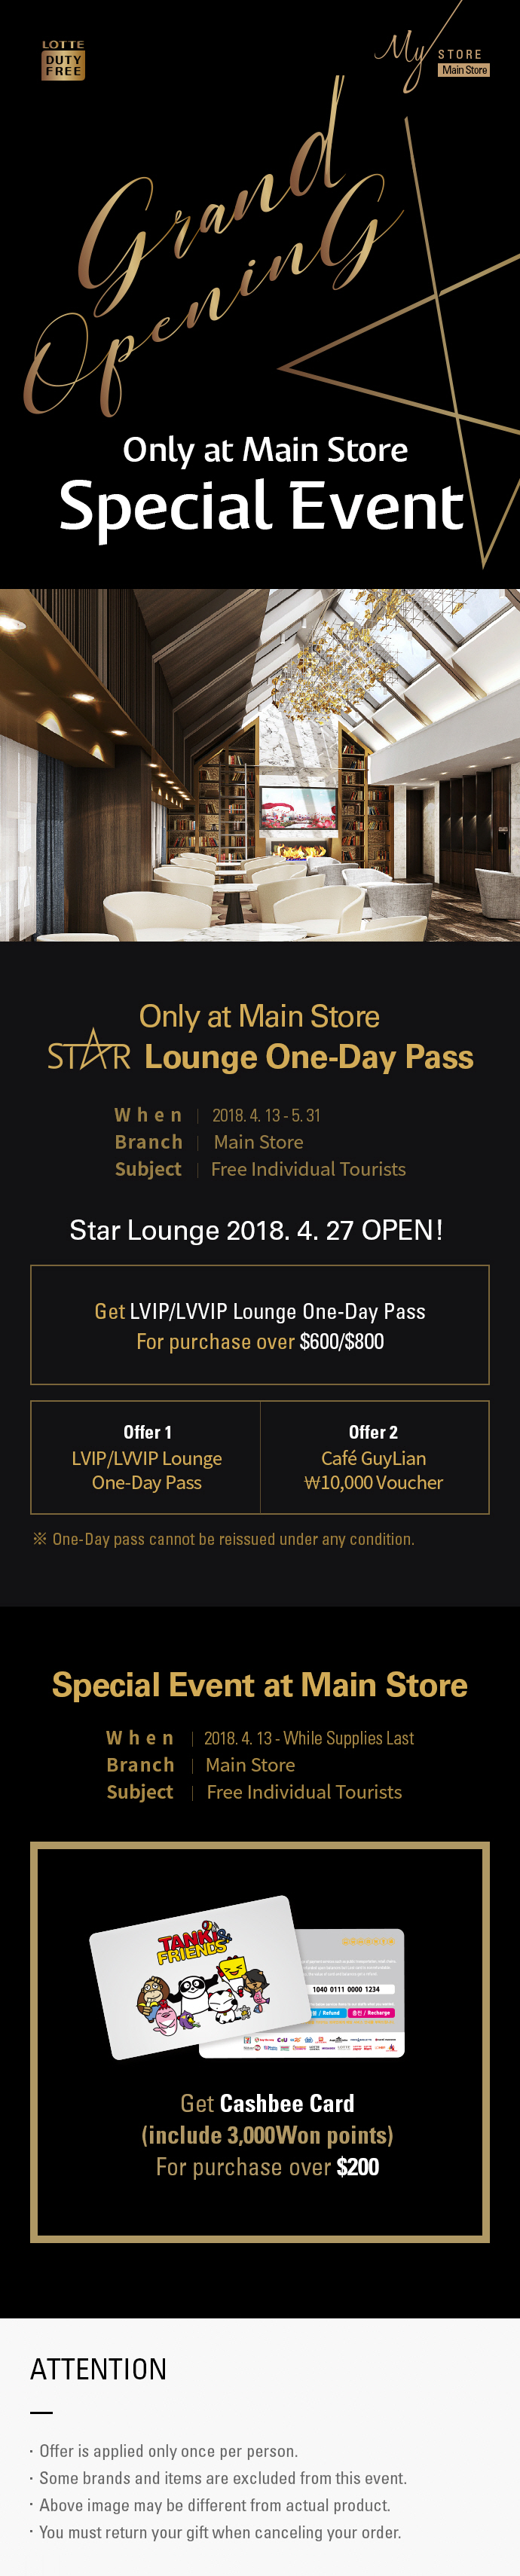 Only at Main Store STAR Lounge One-Day Pass